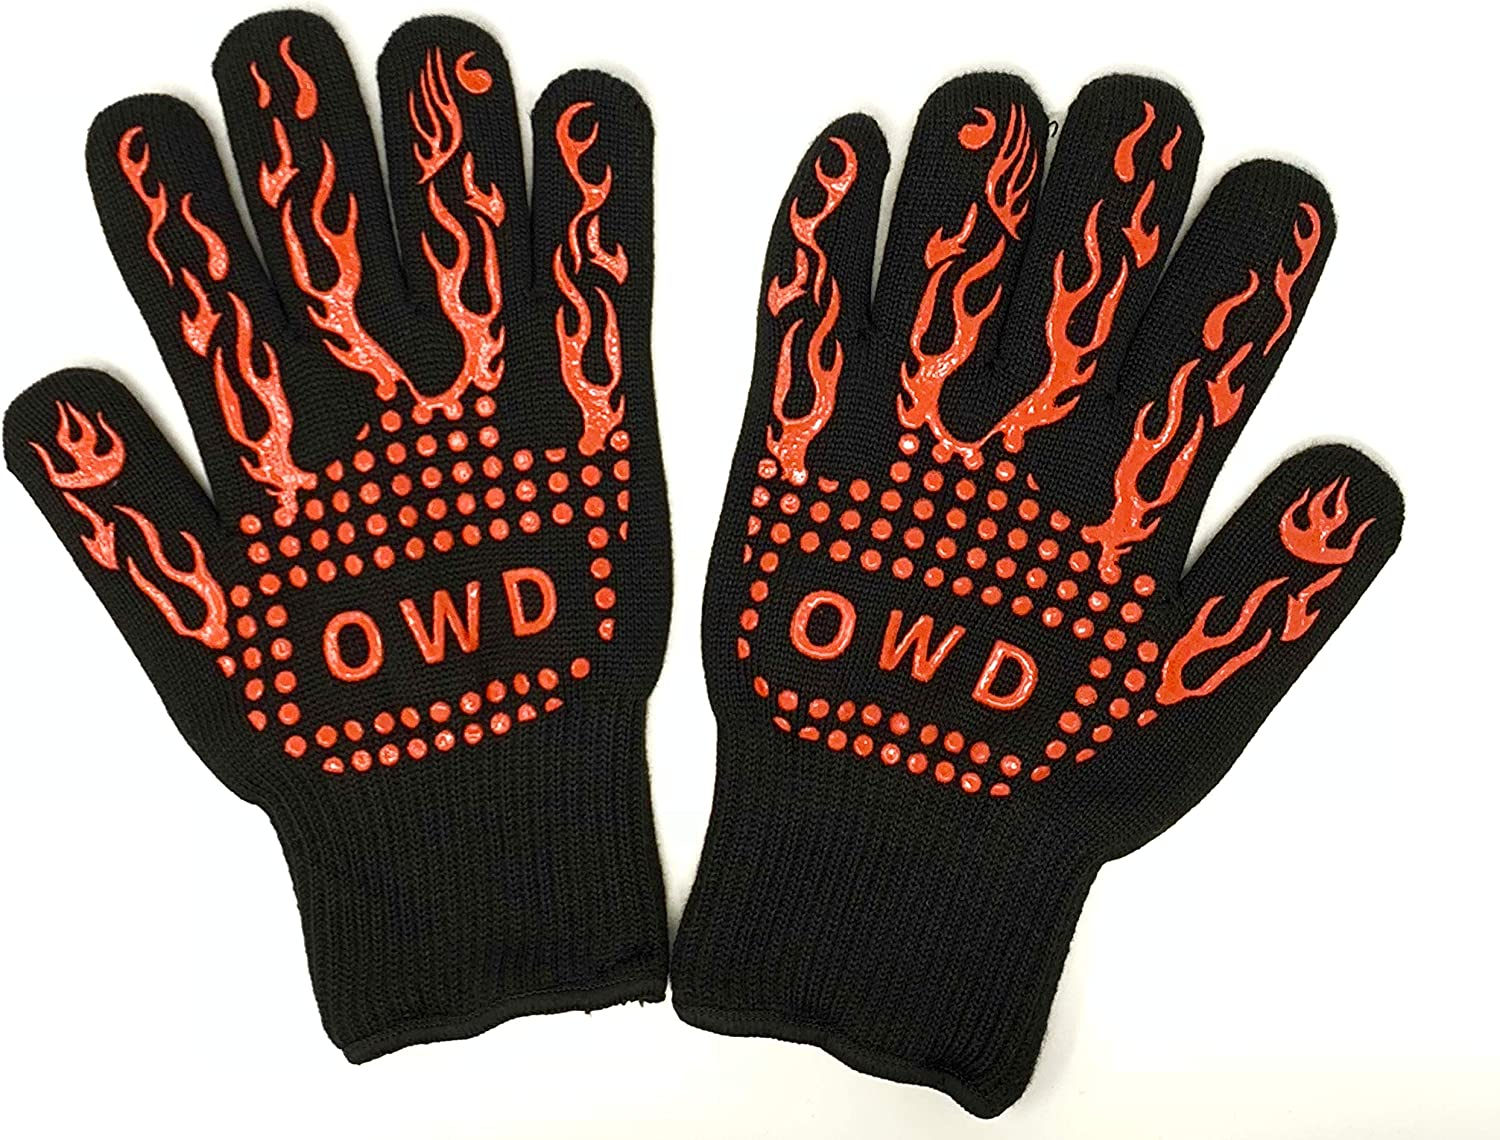 OWD Premium BBQ Grill Gloves, 932℉ Extreme Heat Resistant - Oven Silicone Glove Fireproof for Smoker Baking - High-Temp Barbecue Grilling Potholders - Heat-Insulated Cooking Mitt (Red)